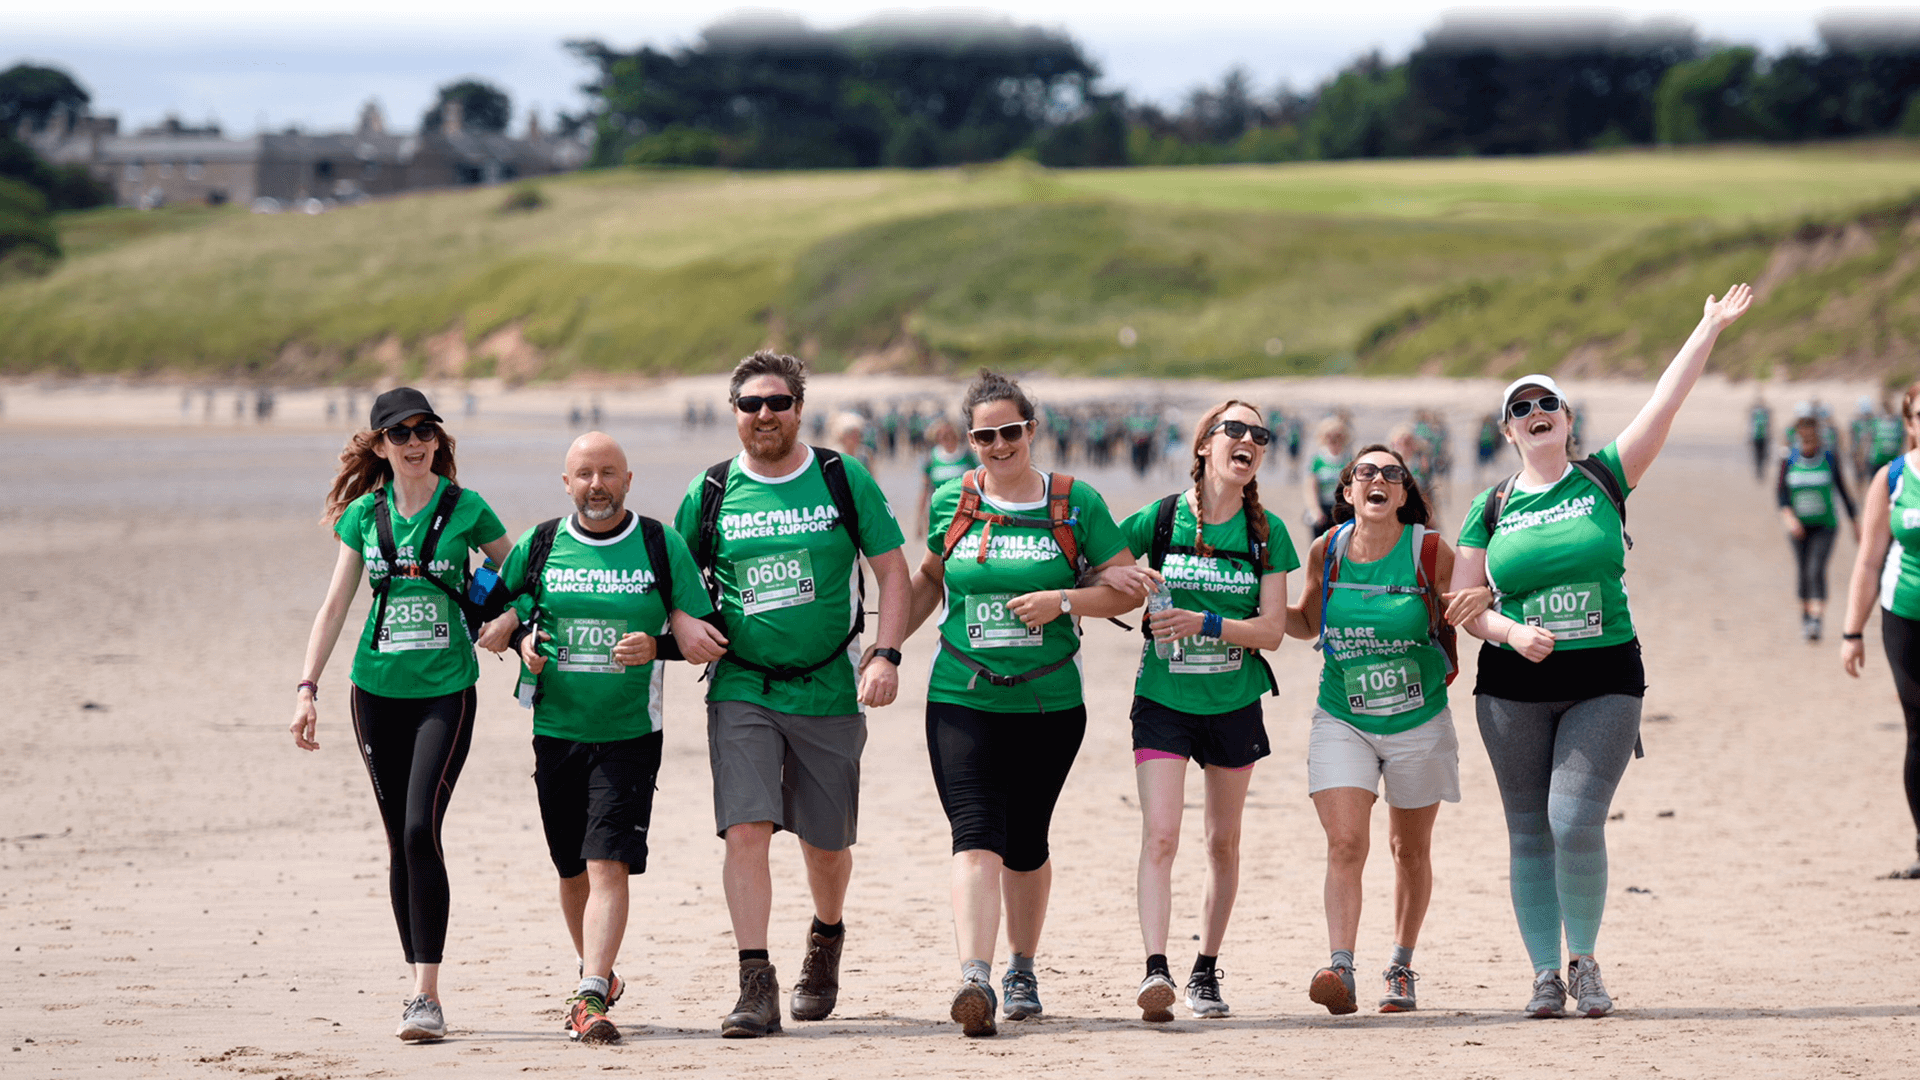 Seven hikers in green, walking along a beach with their arms linked together